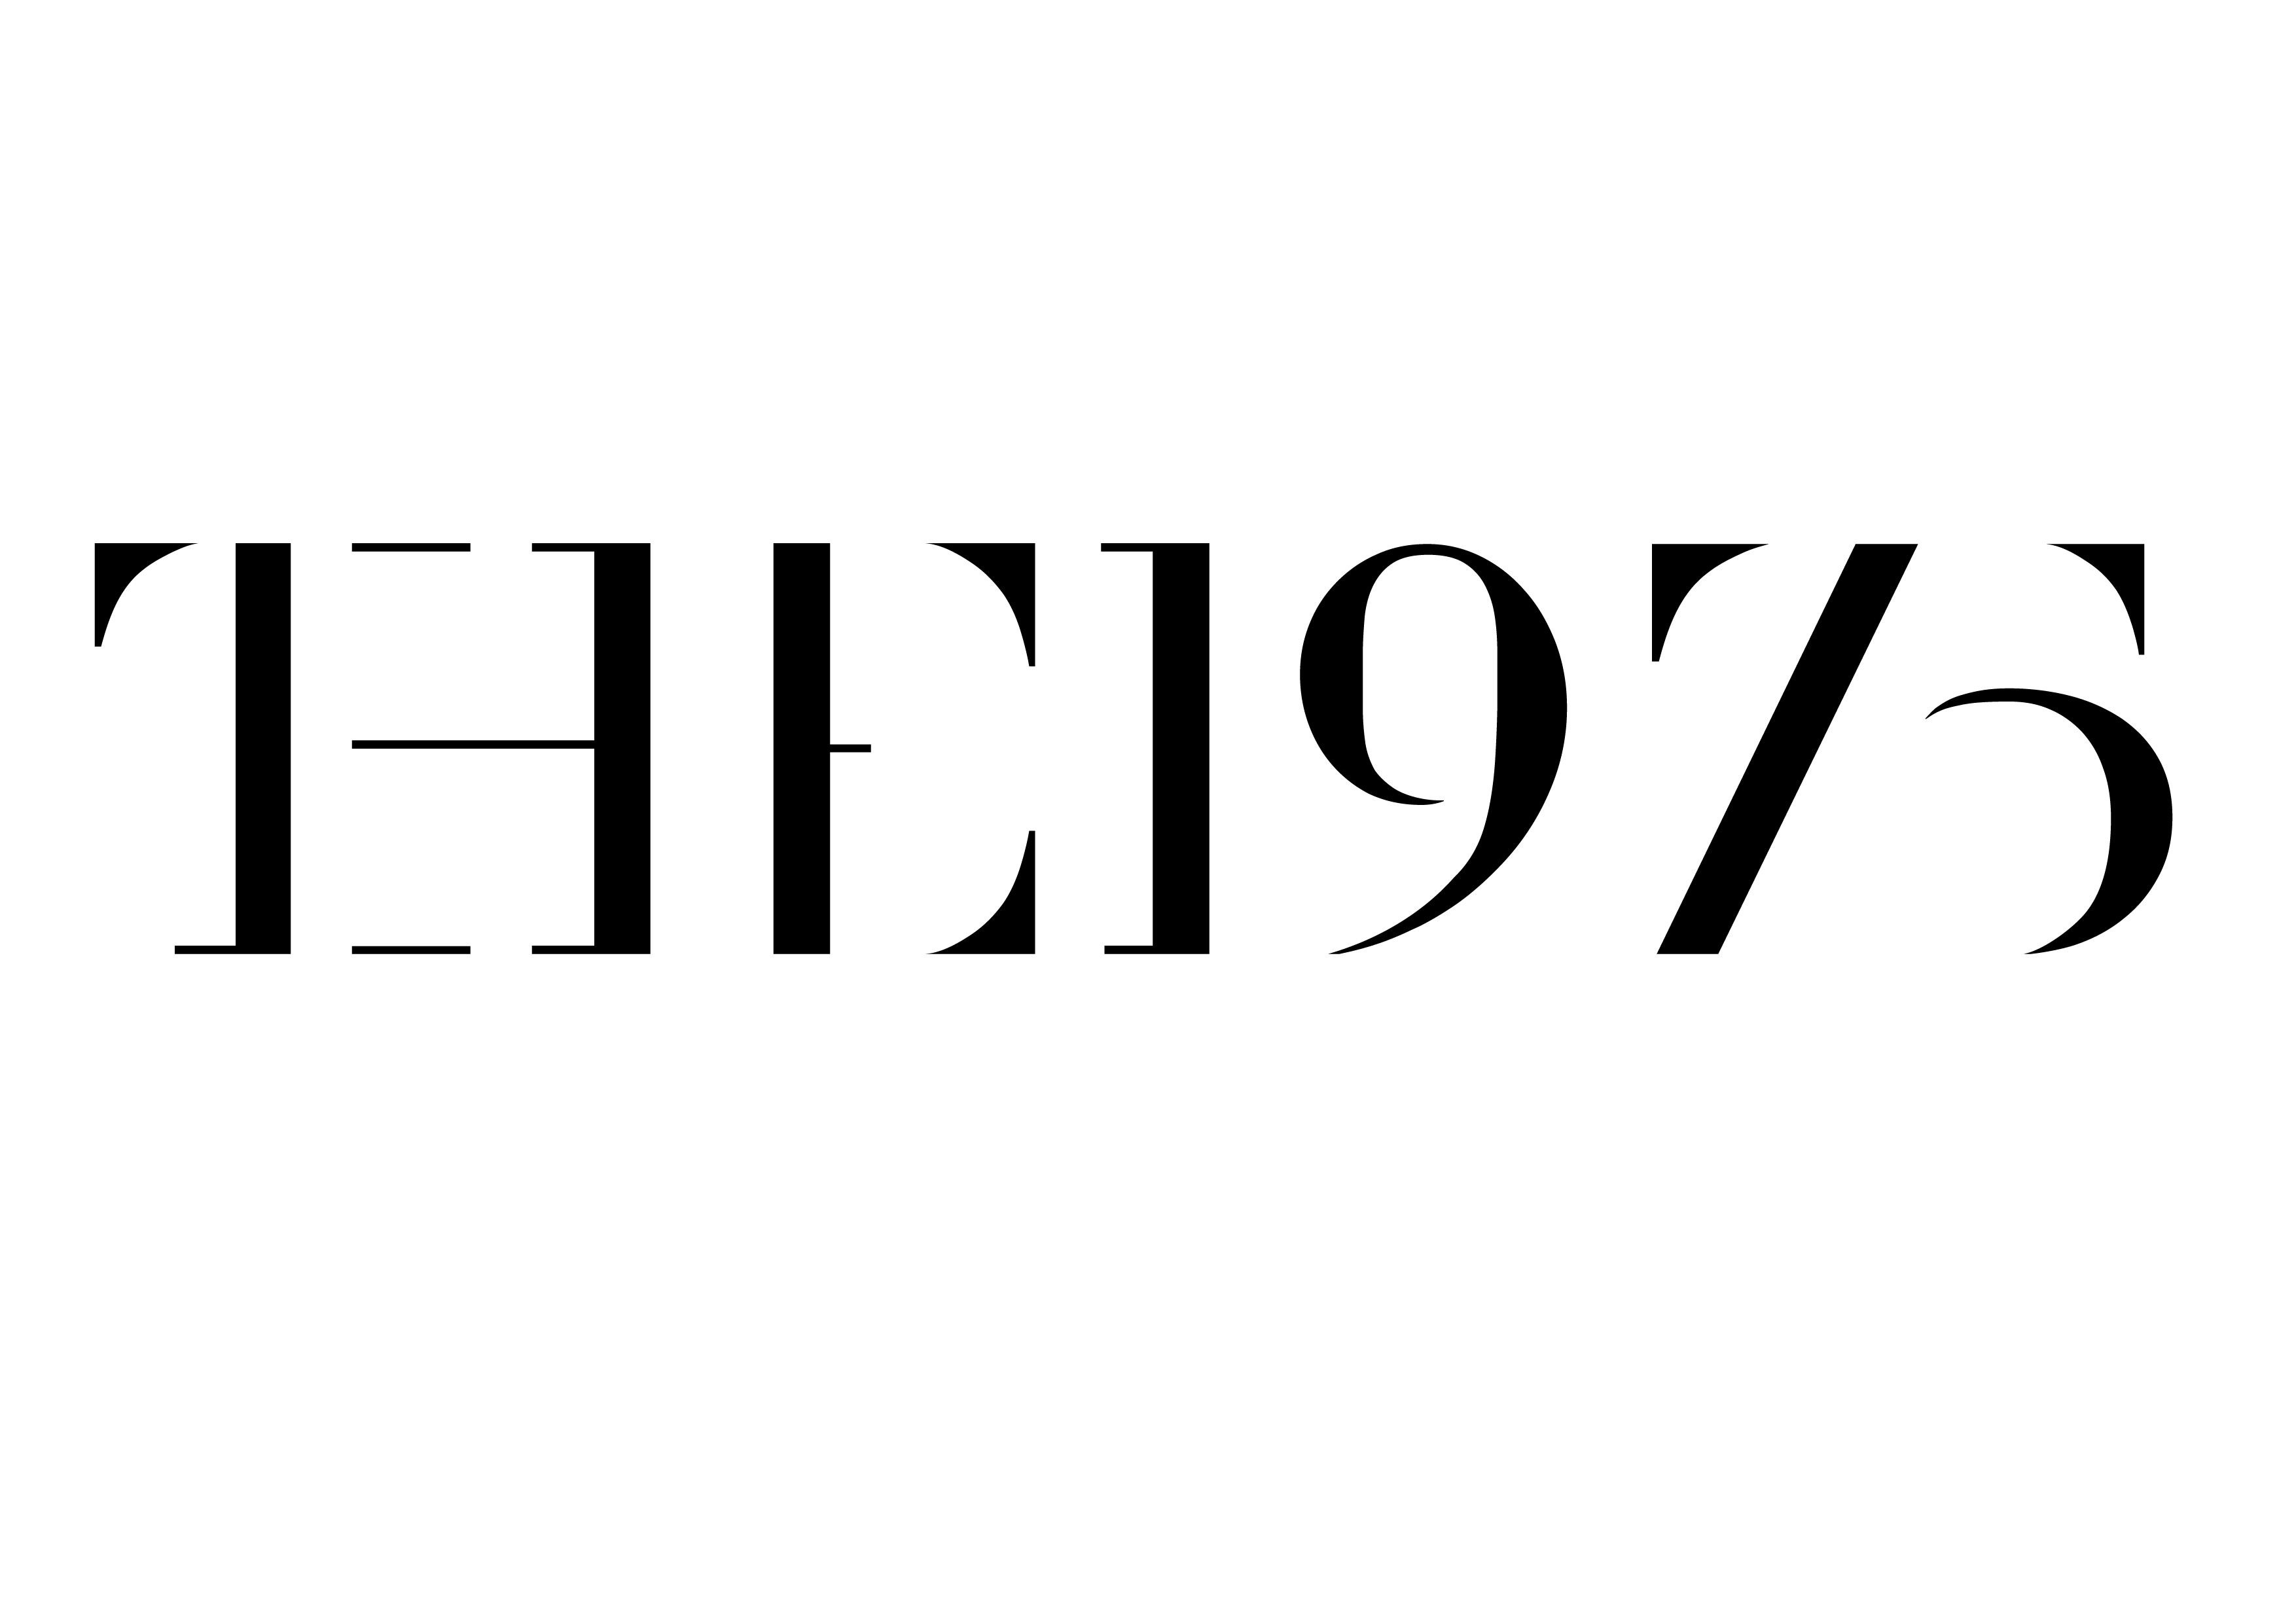 The 1975 Font